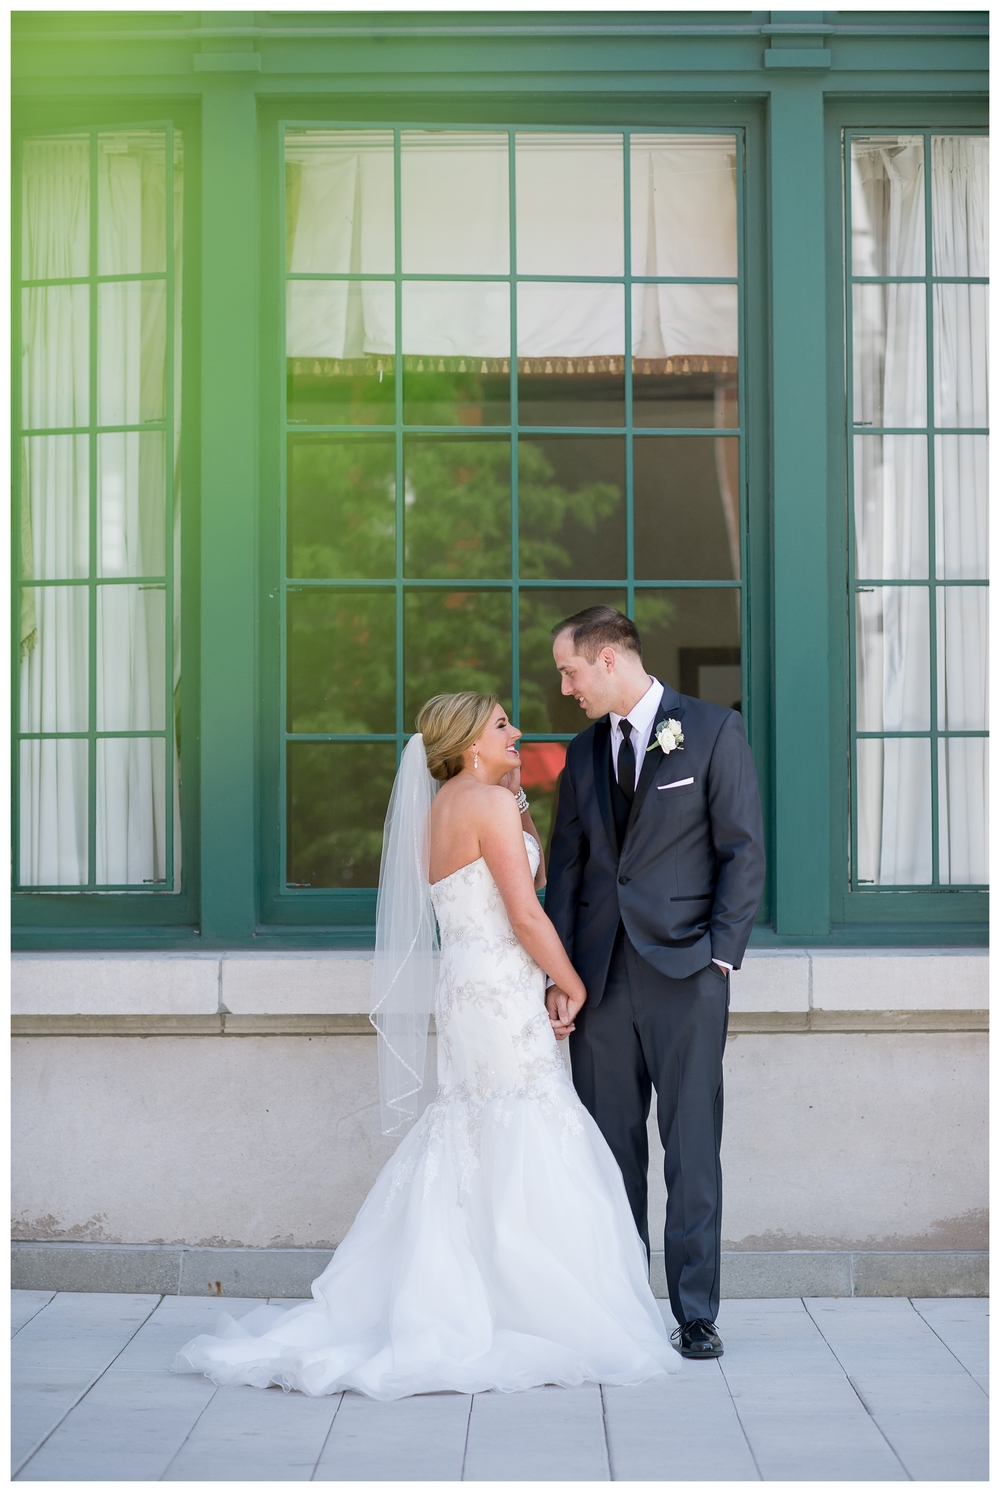 Rebecca_Bridges_Photography_Indianapolis_Wedding_Photographer_4169.jpg